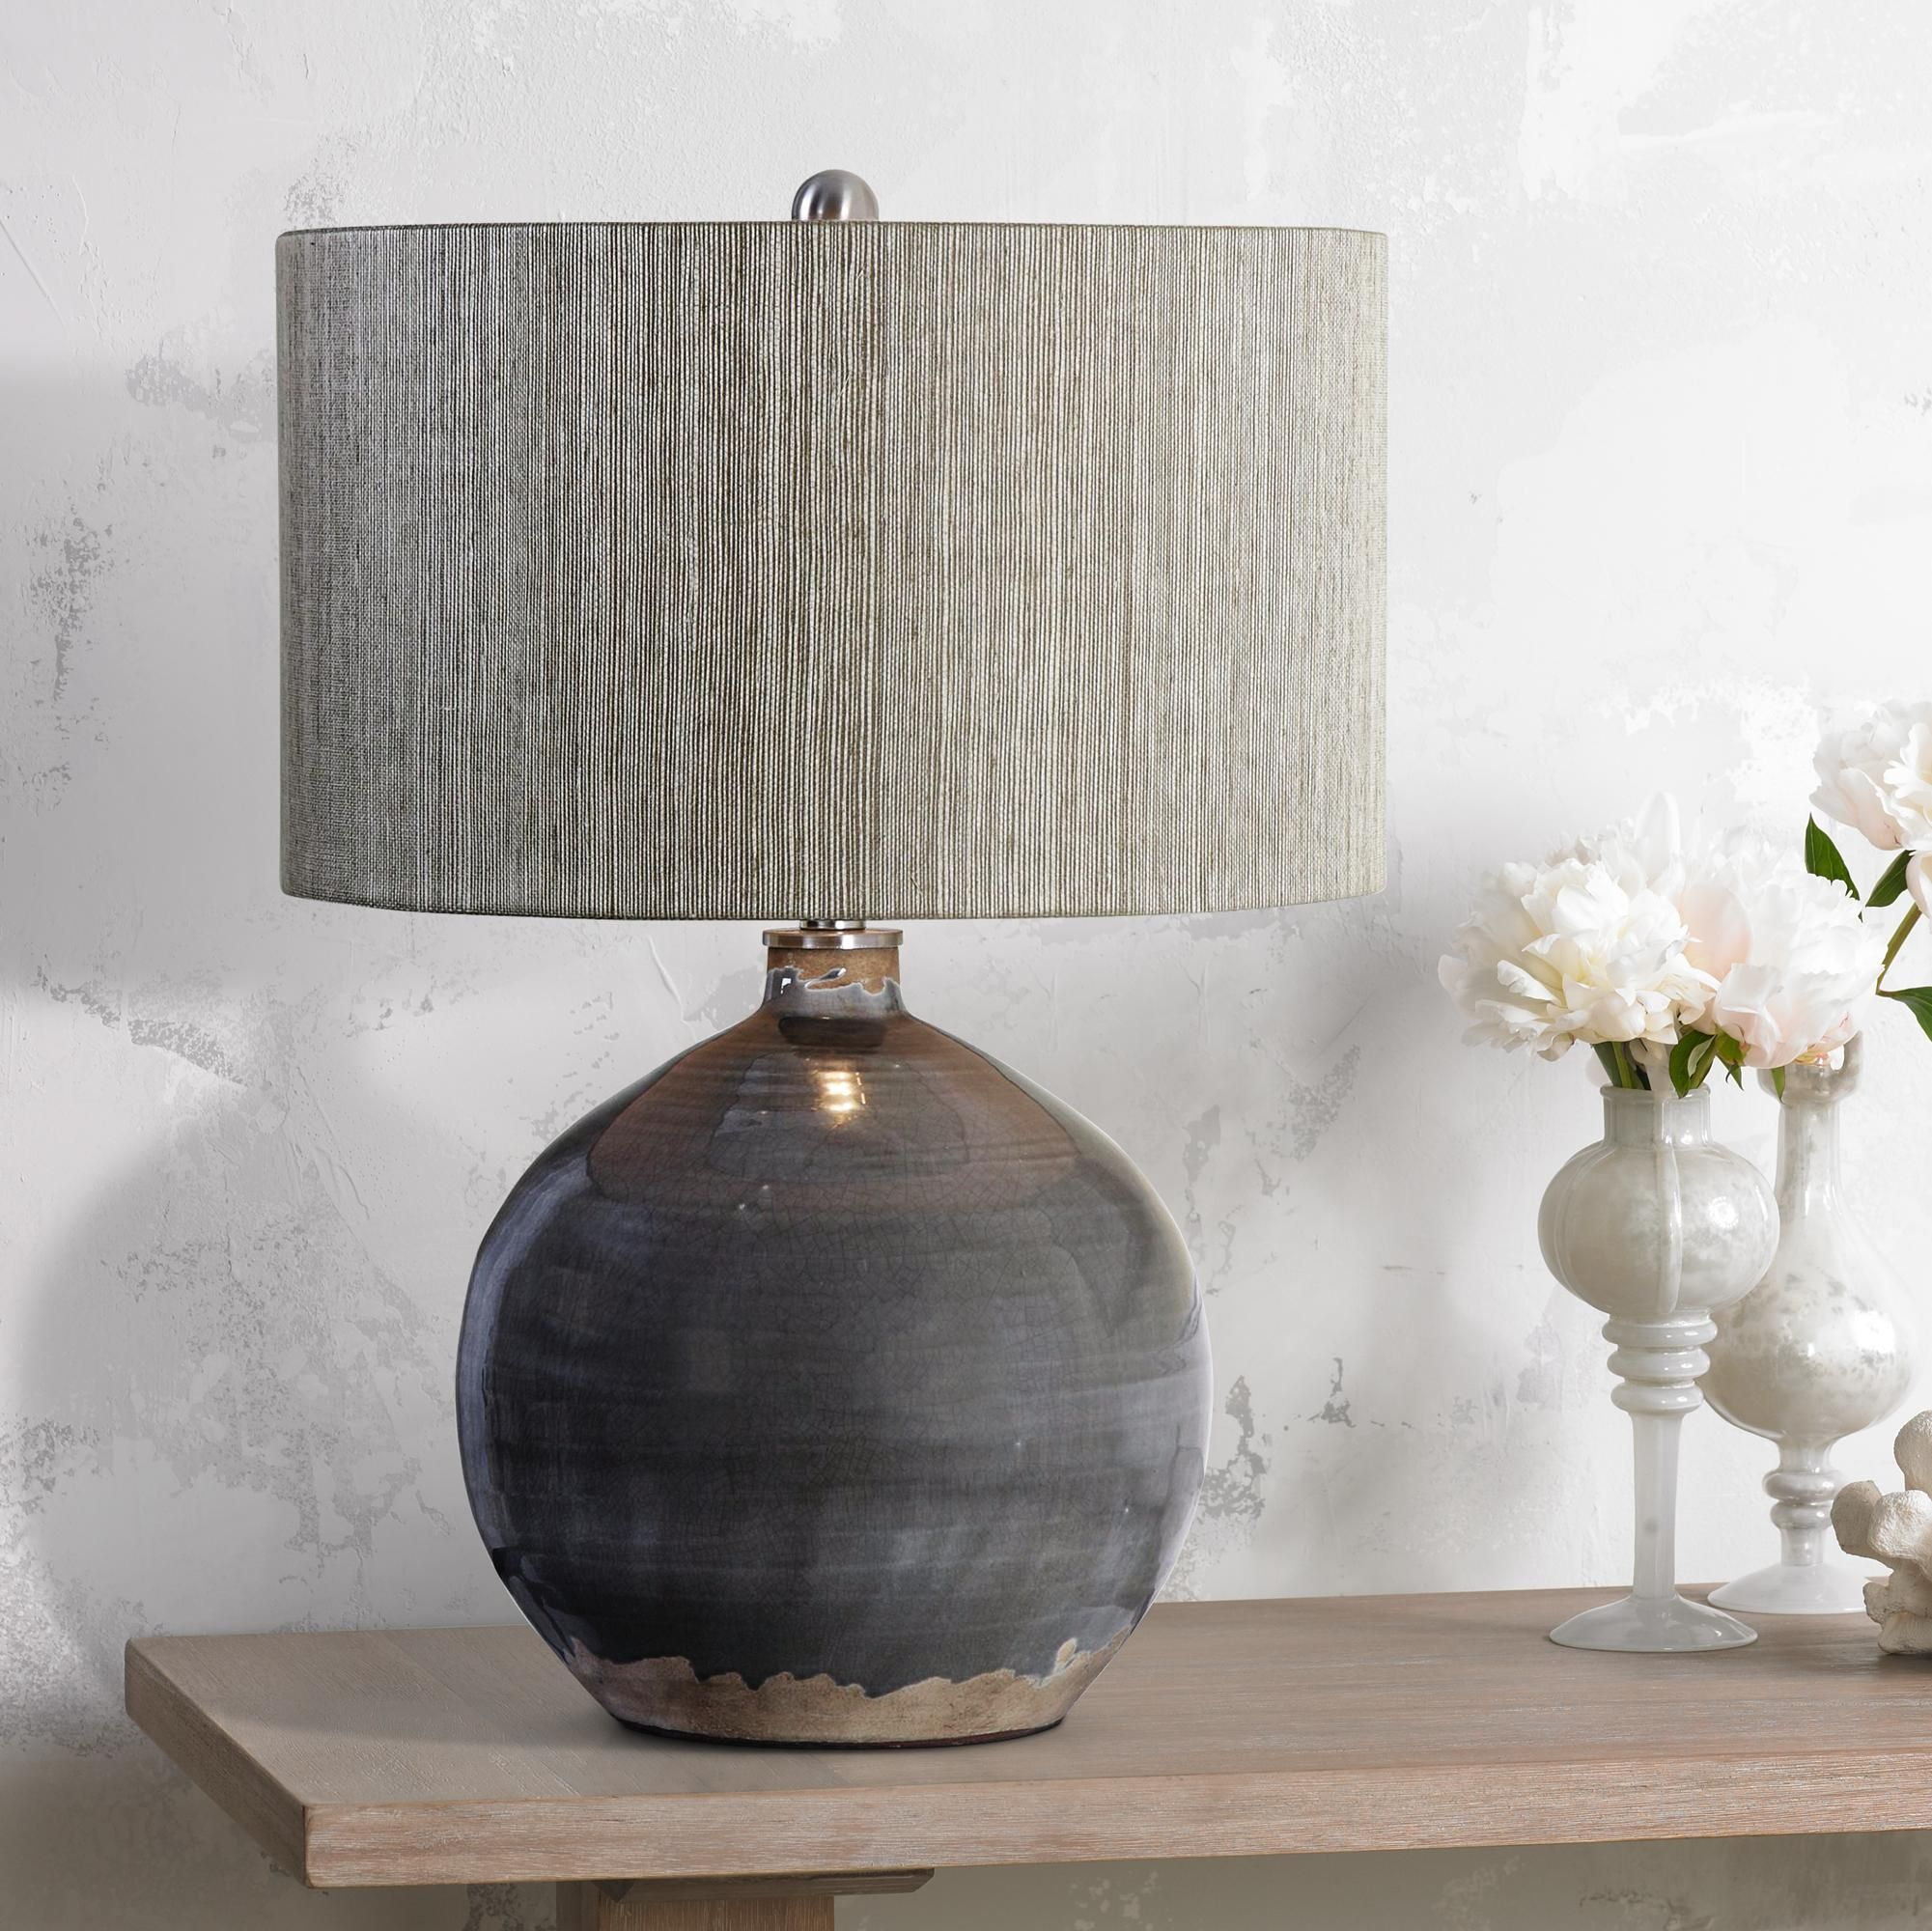 Table Lamps Uttermost Vardenis Charcoal Crackle Ceramic Table Lamp Table Lamps Living Room Table Lamp Design Lamps Living Room #table #lamp #sets #for #living #room